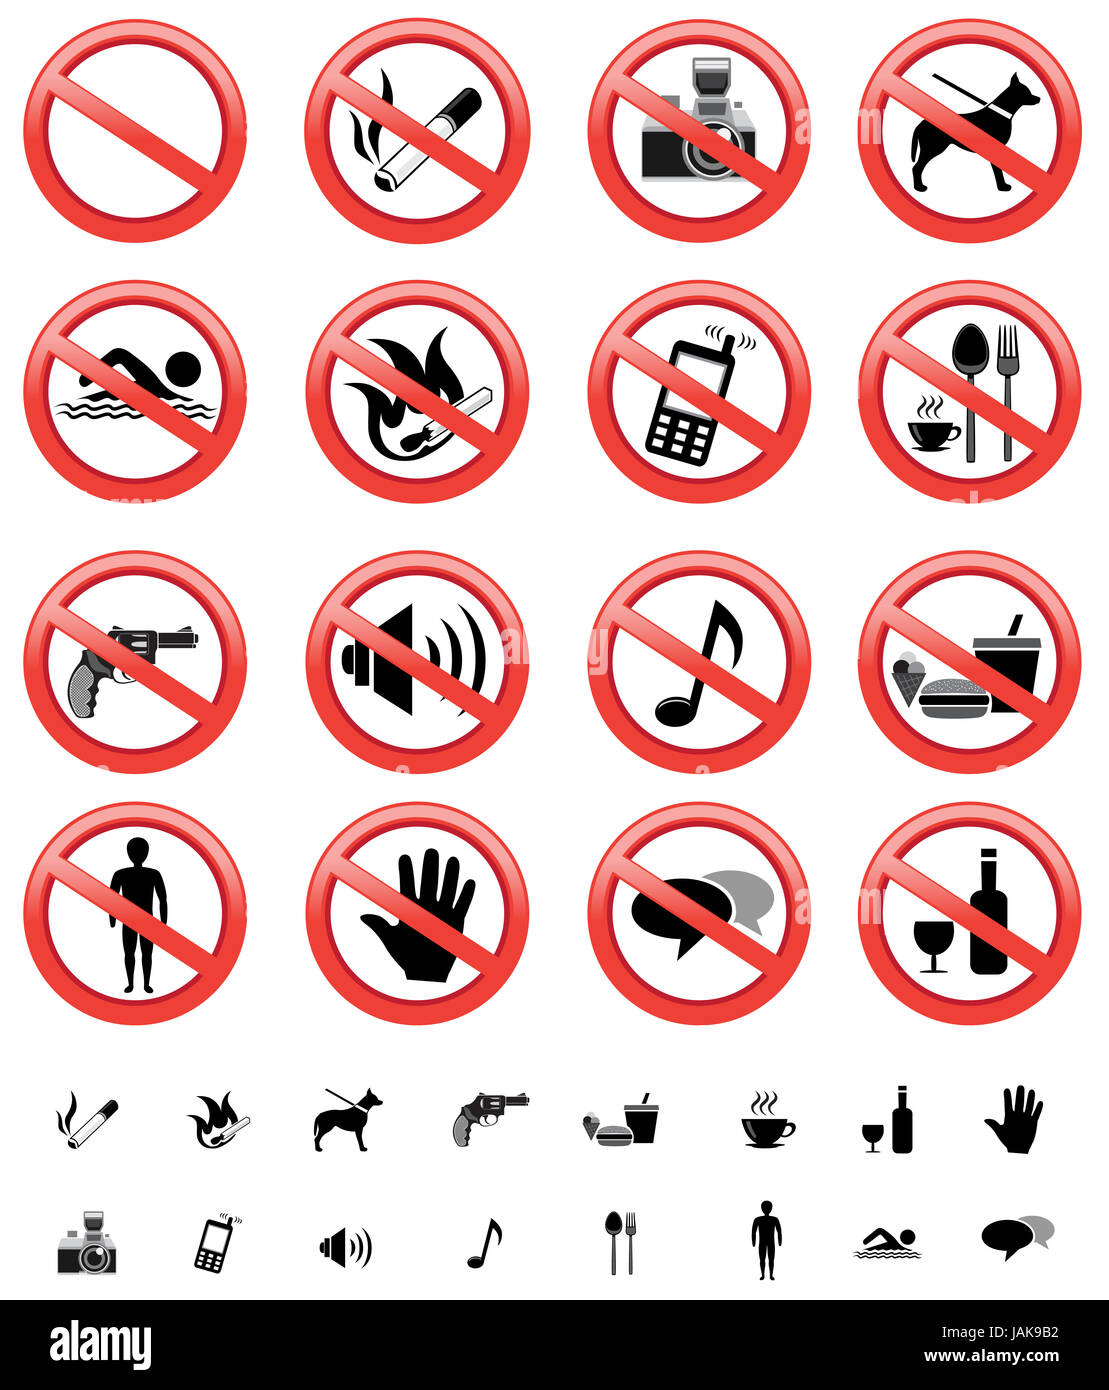 graphic relating to Printable Versions titled The range of forbidden signs or symptoms, with few printable